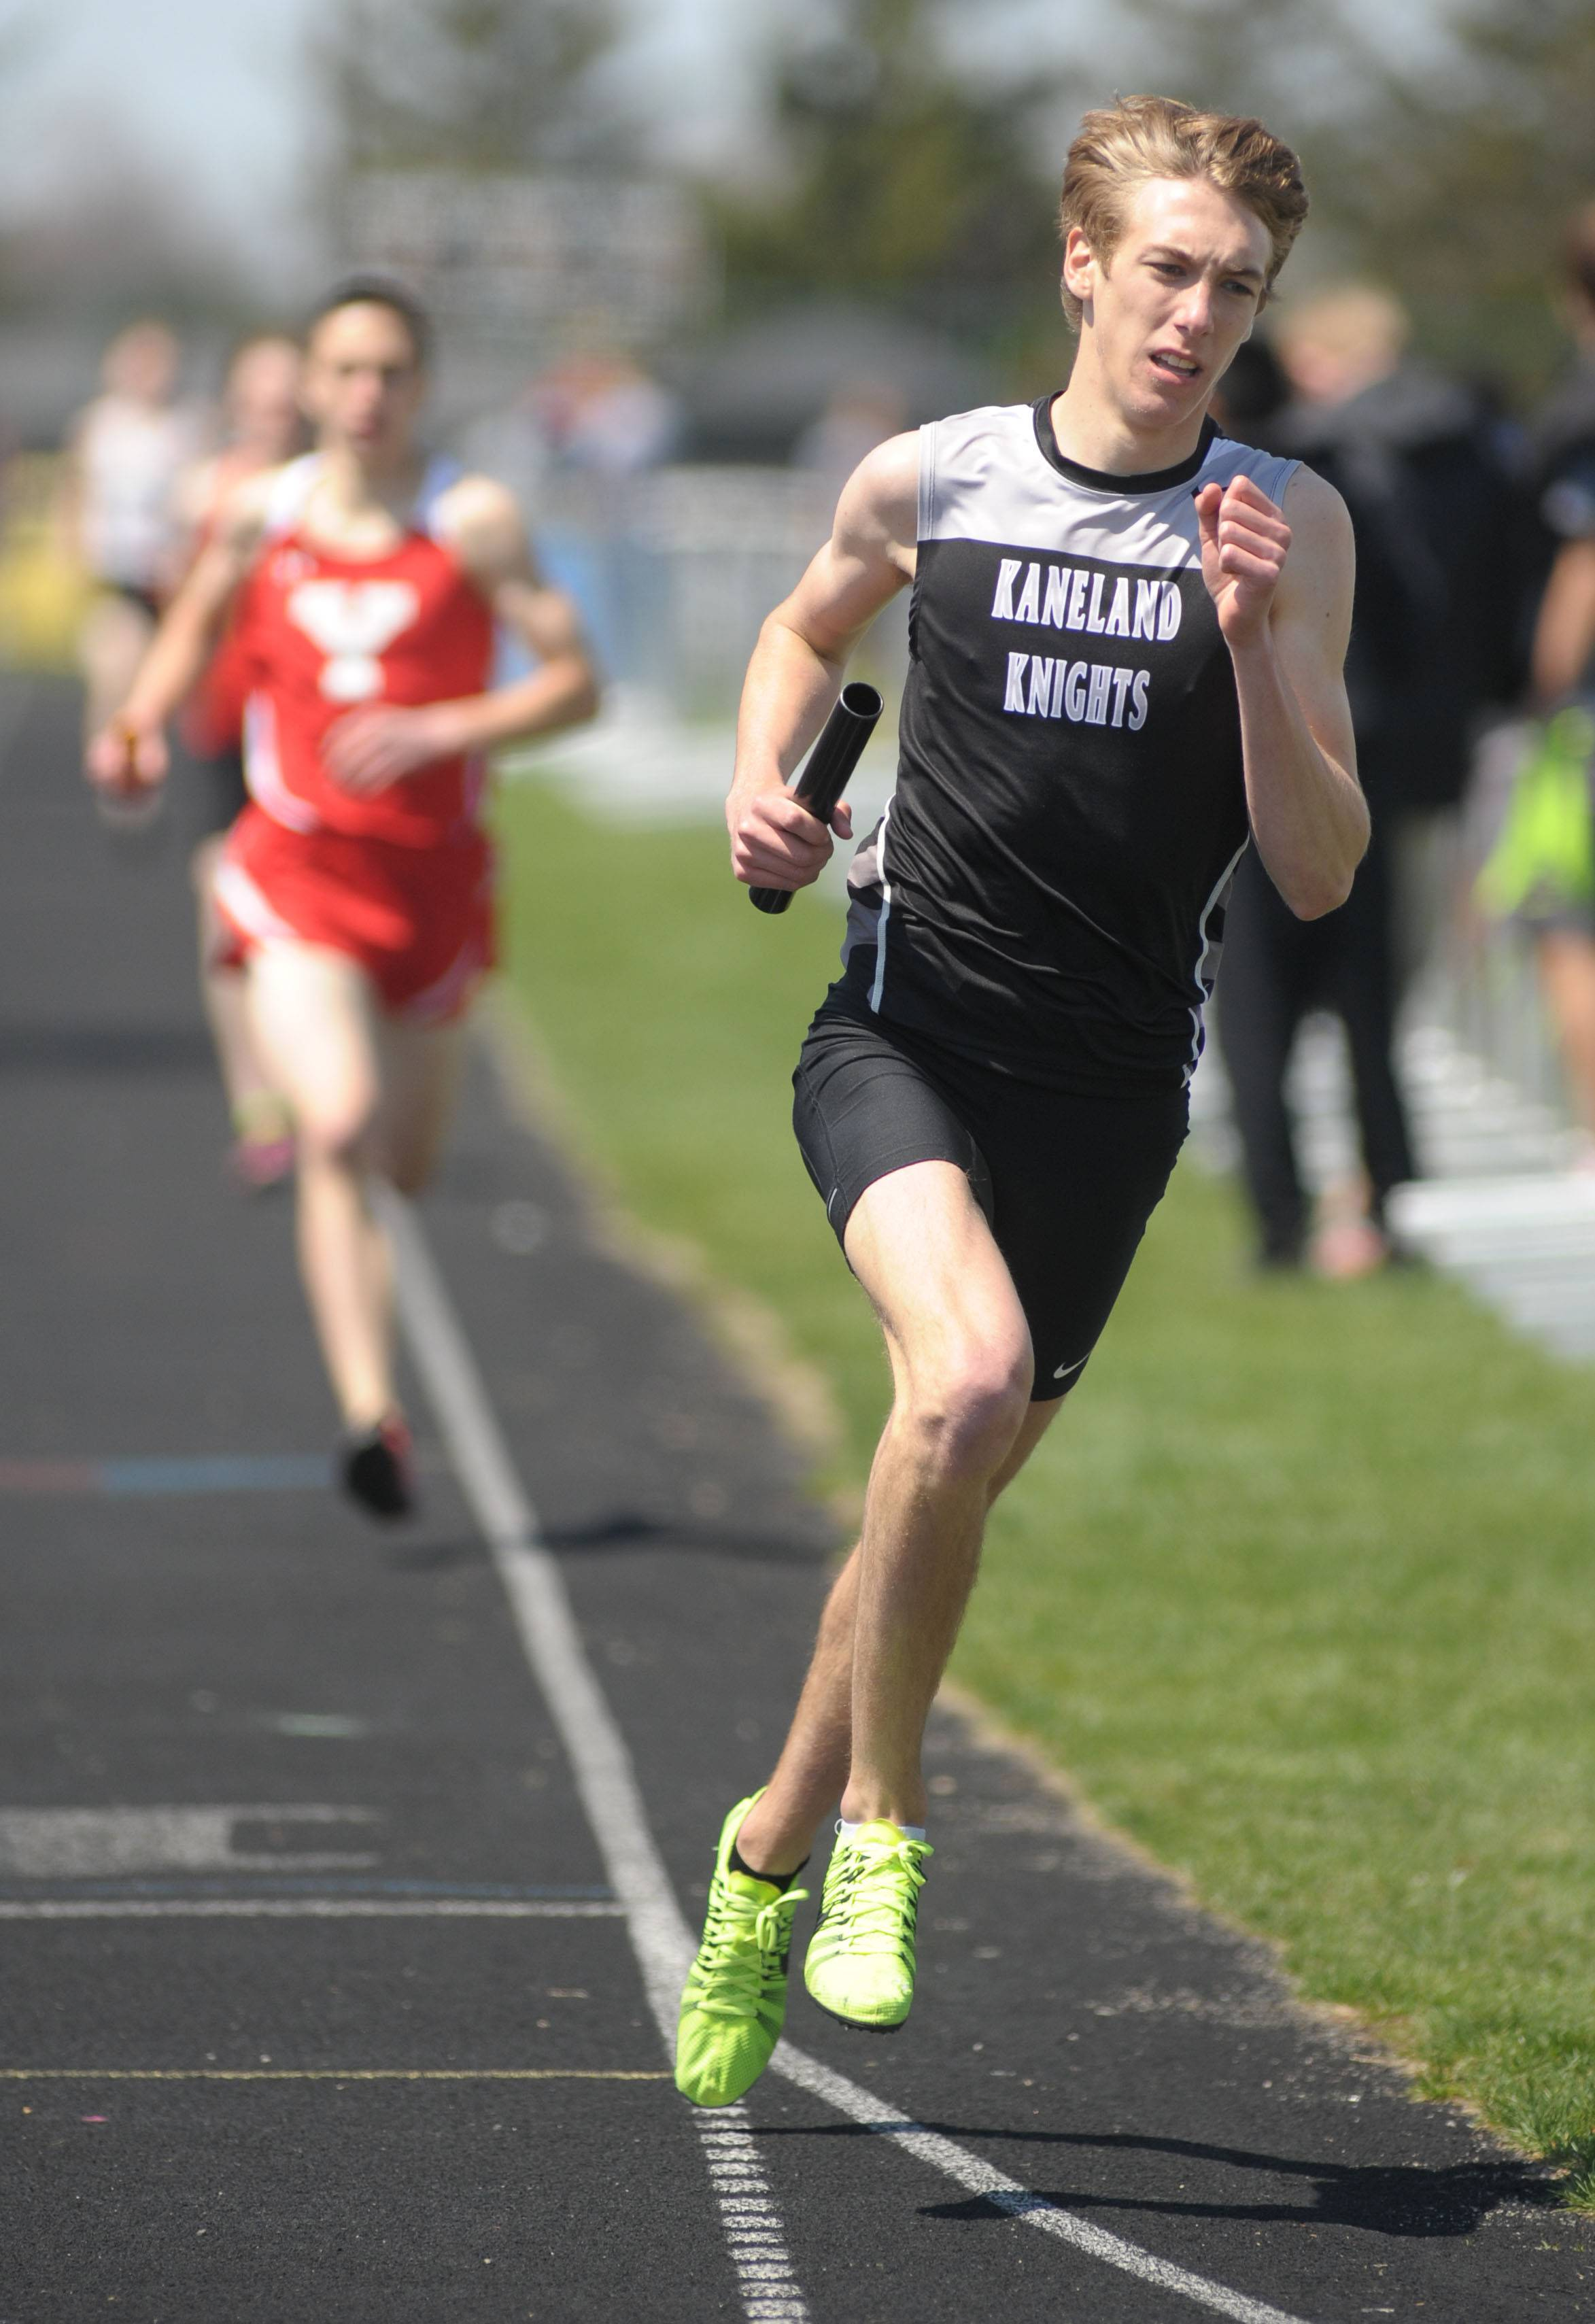 Kaneland's Kyle Carter leads the Knights in the 4 x 800 meter relay at Kaneland's Peterson Prep Invitational on Saturday, April 26. The team would go on to break the Illinois state record for the event.